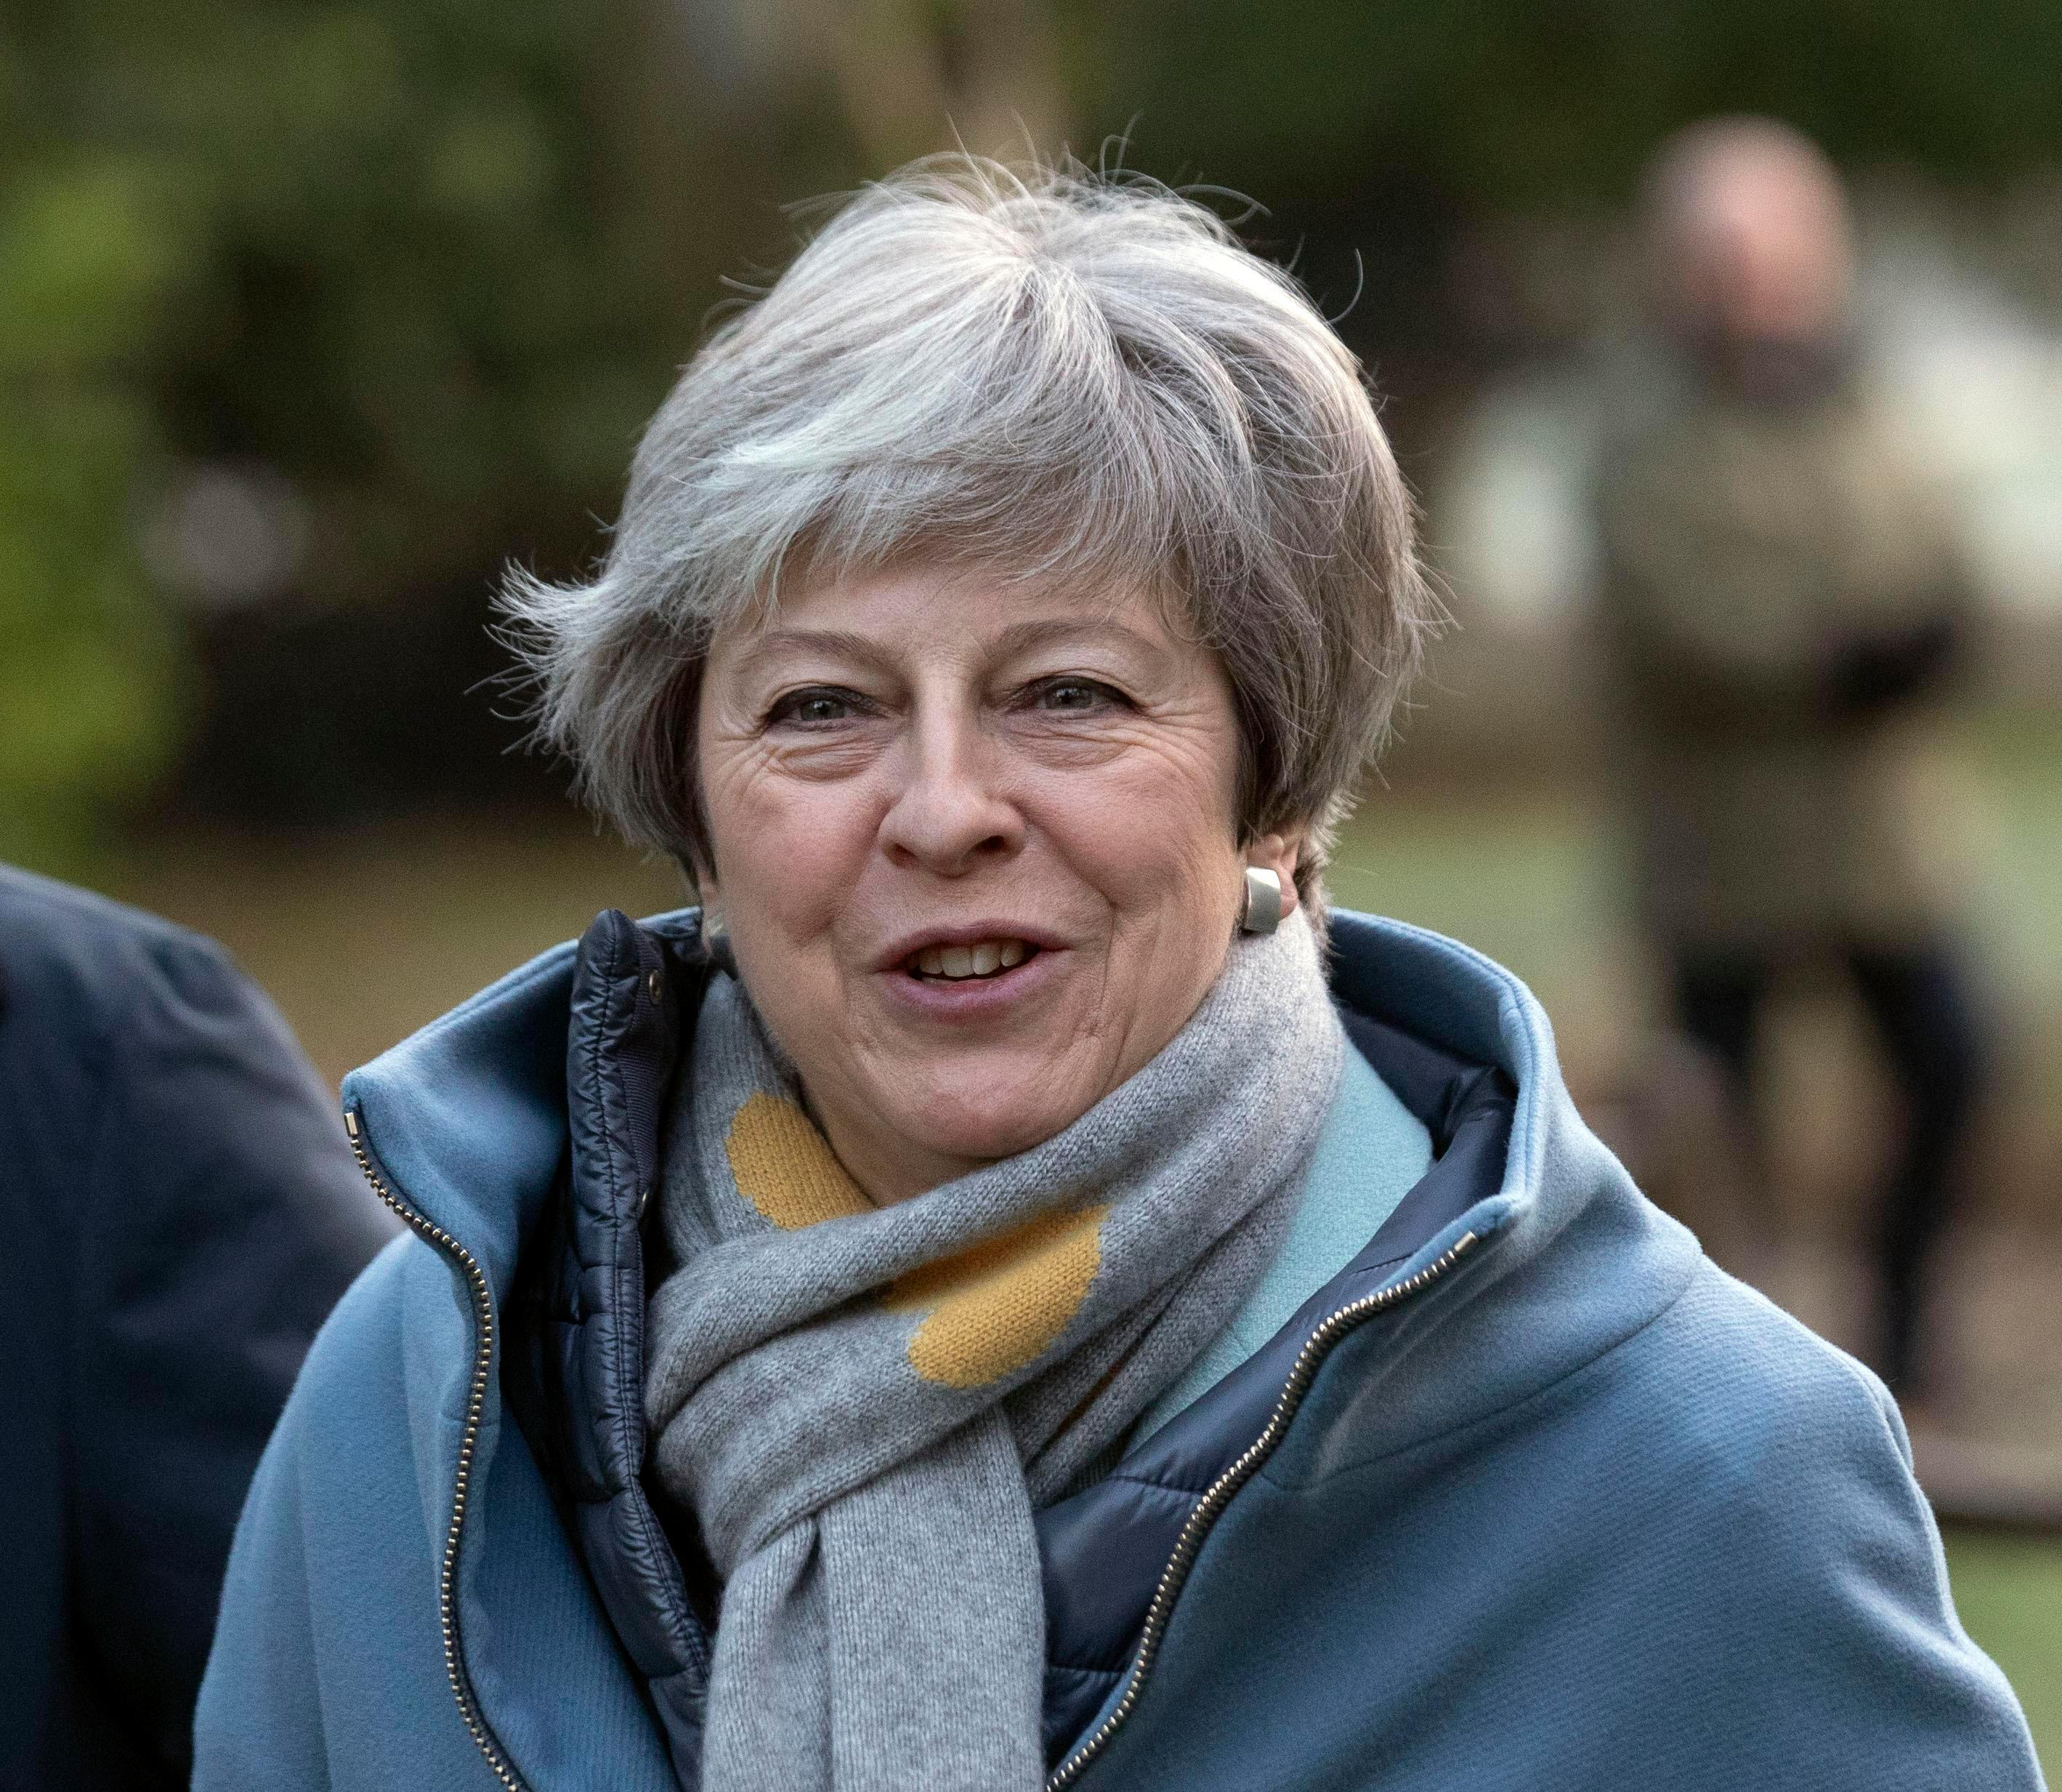 Stubborn Brussels bosses 'set up Brexit to fail from the start' as Theresa May prepares to beg them to fix hated backstop